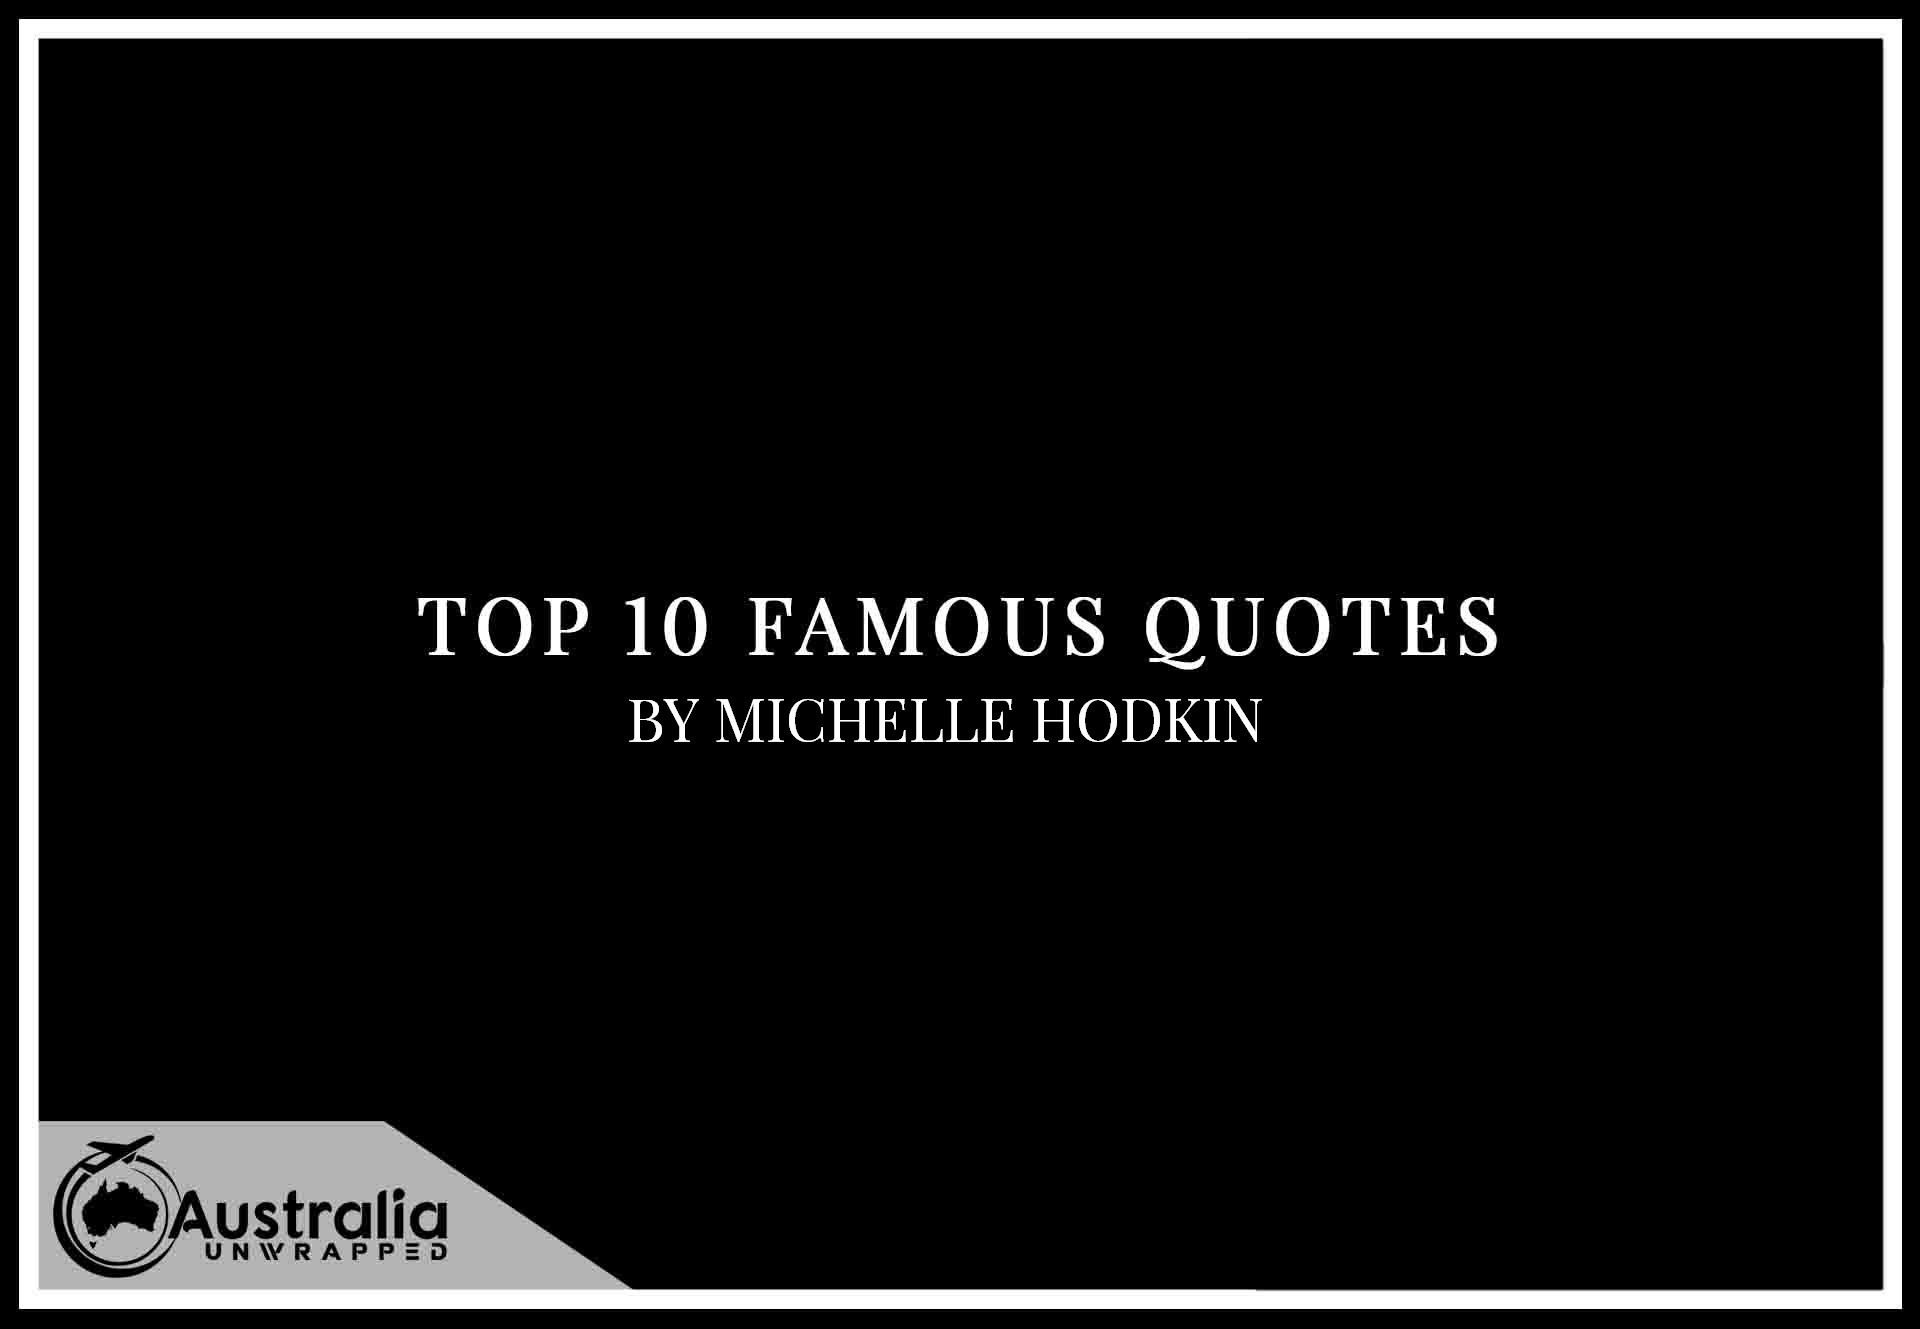 Top 10 Famous Quotes by Author Michelle Hodkin